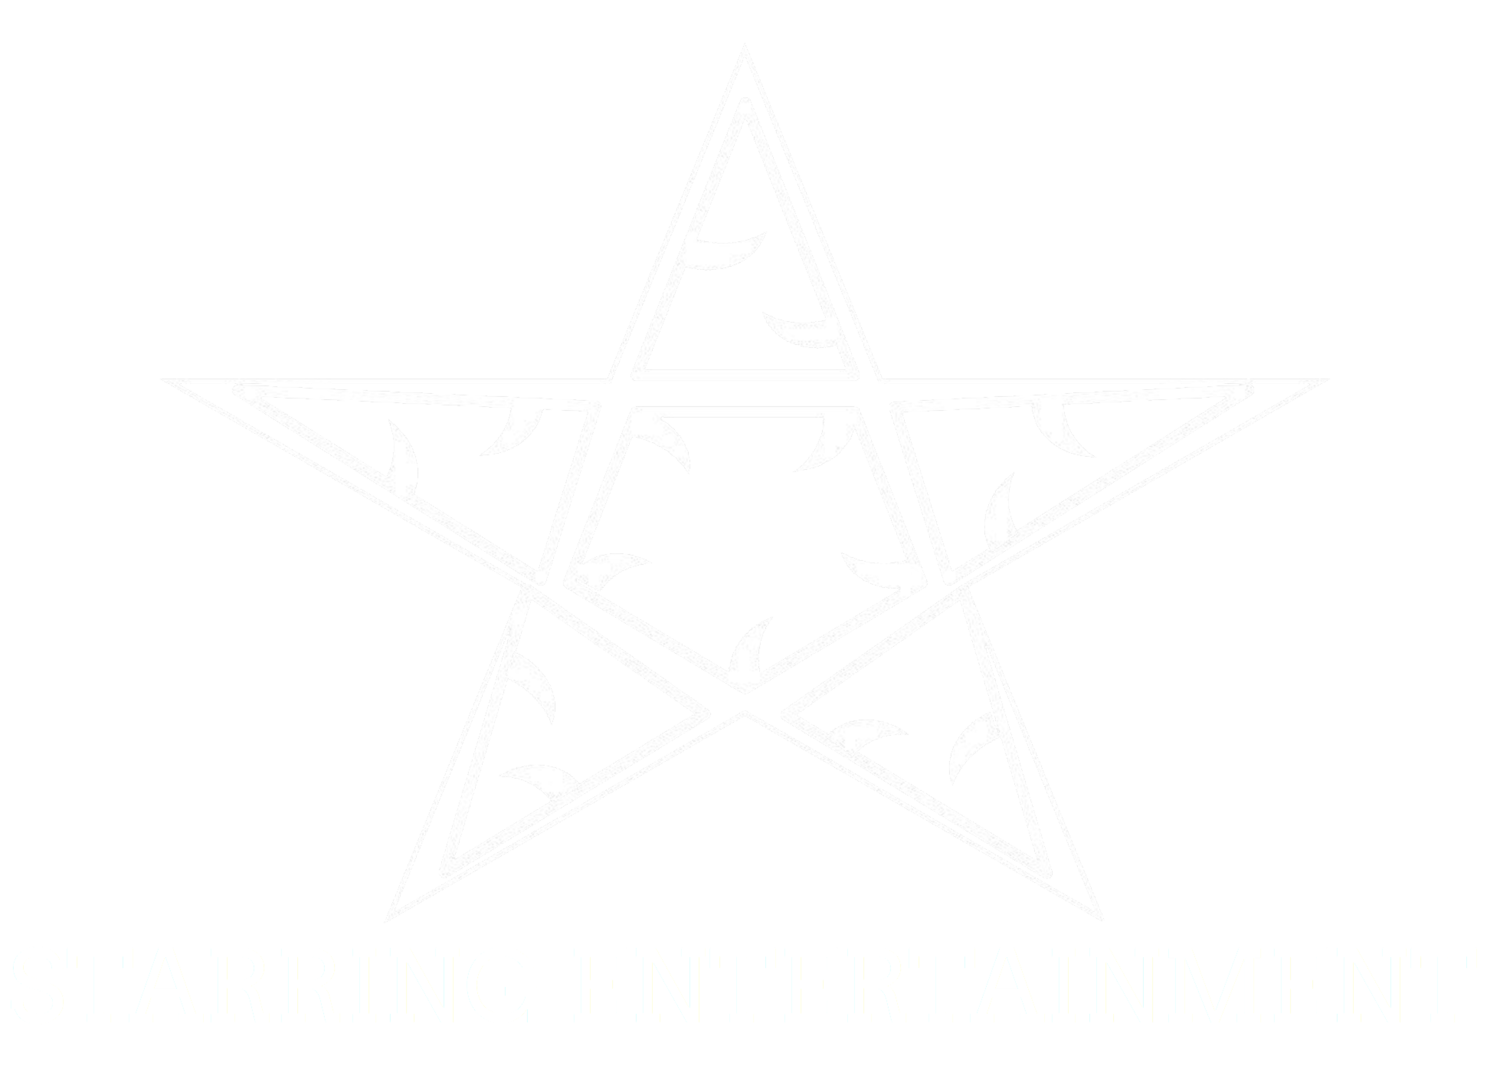 Starring Entertainment